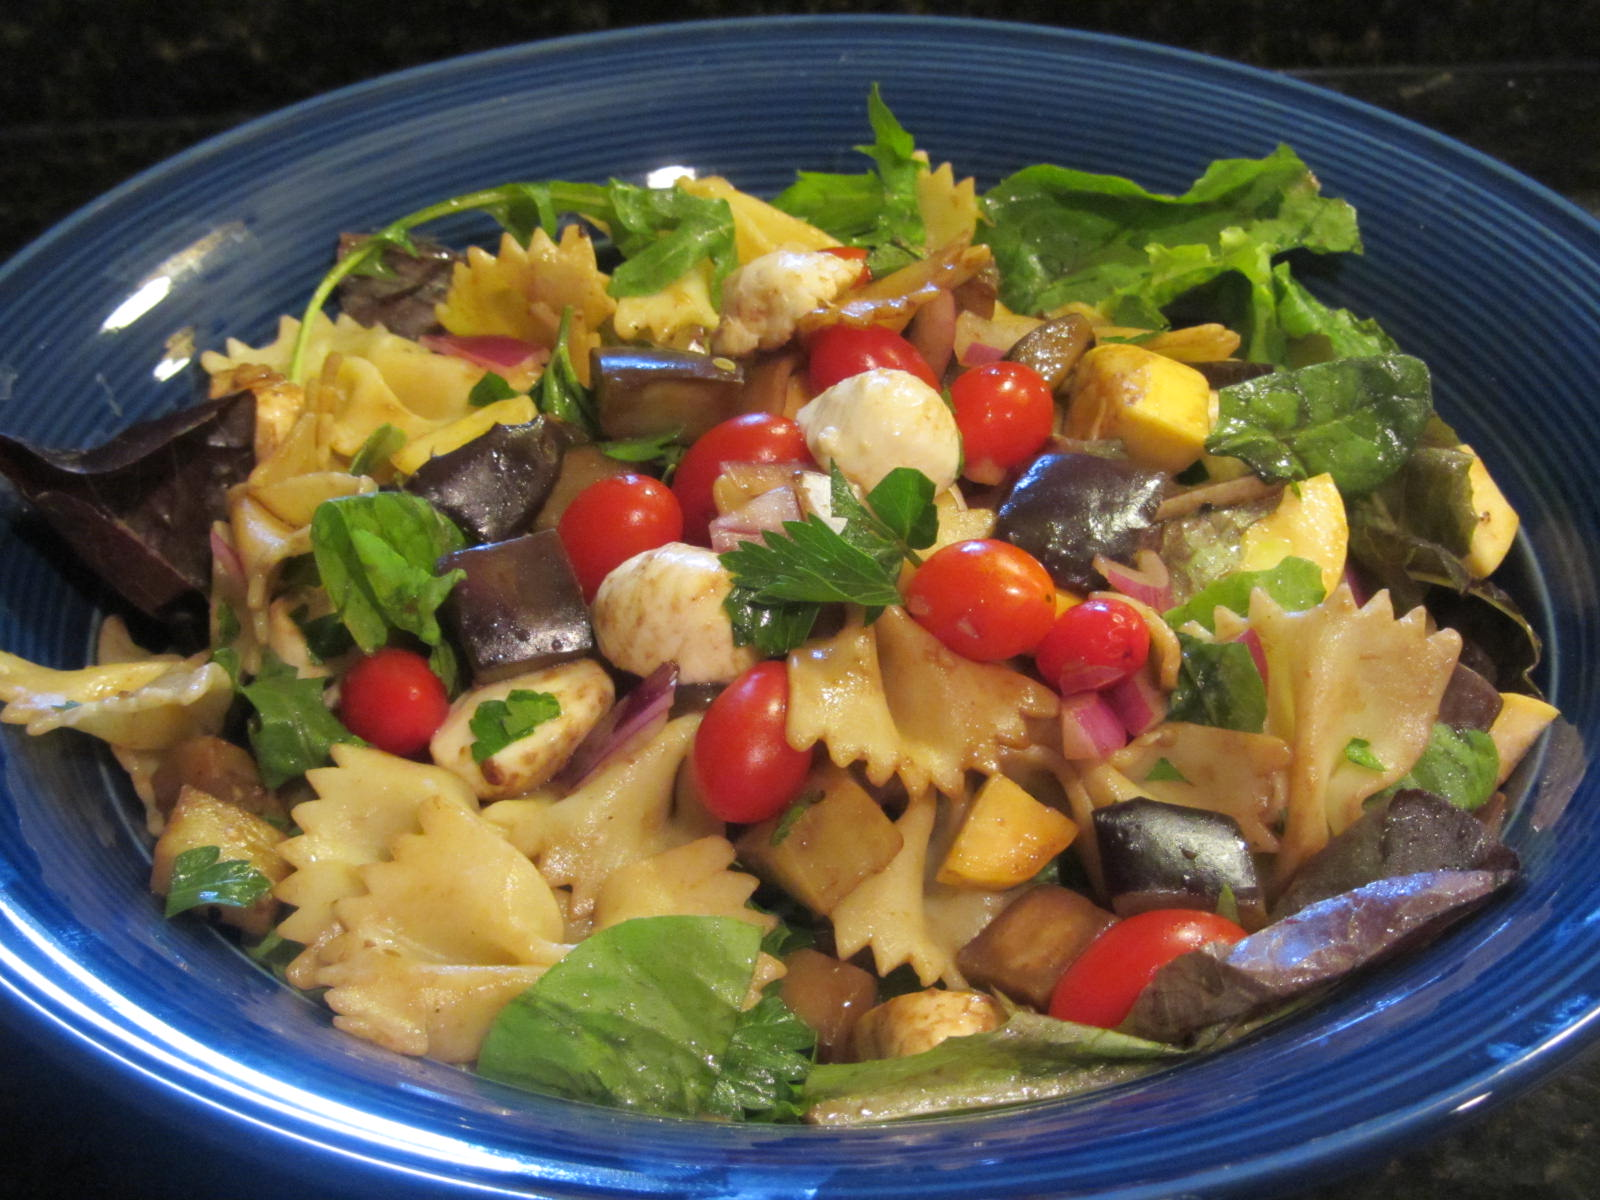 Healthy Side Dish: Balsamic Eggplant Pasta Salad